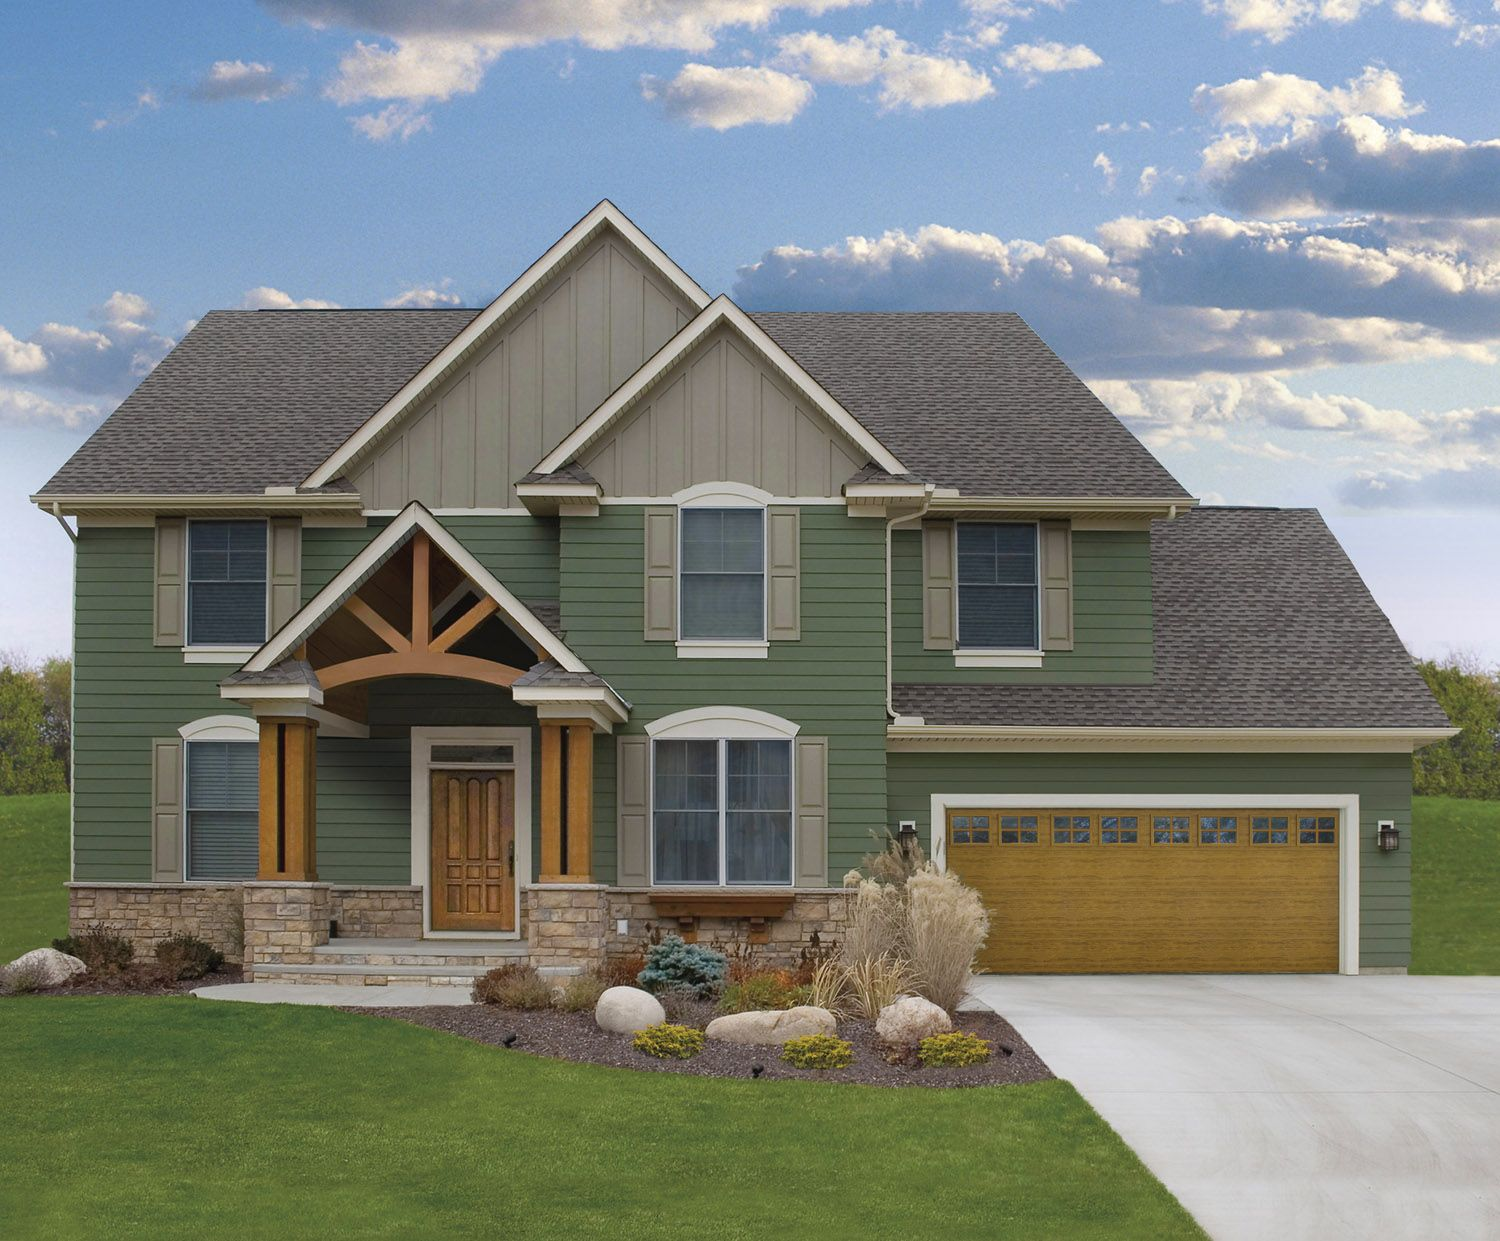 Clopay doors residential garage doors and entry doors clopay cypress collection garage door is simply a classic look that highlights the wooden accents on this house rubansaba